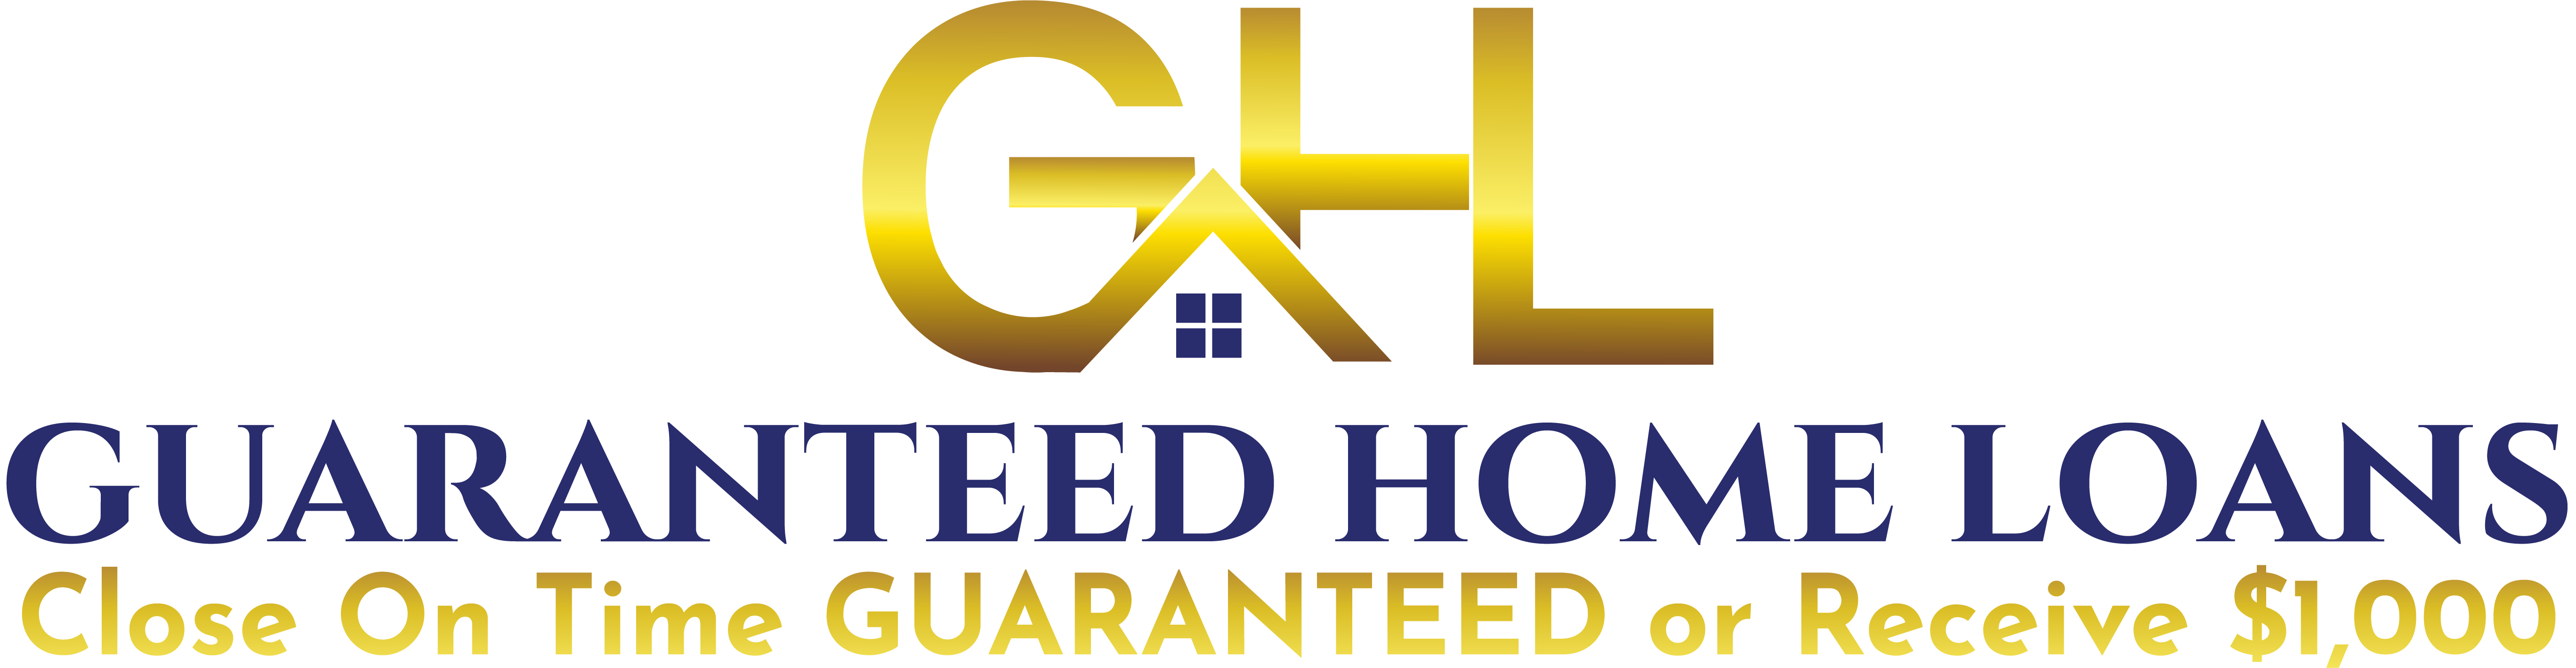 Guaranteed Home Loans NMLS# 1982815 logo